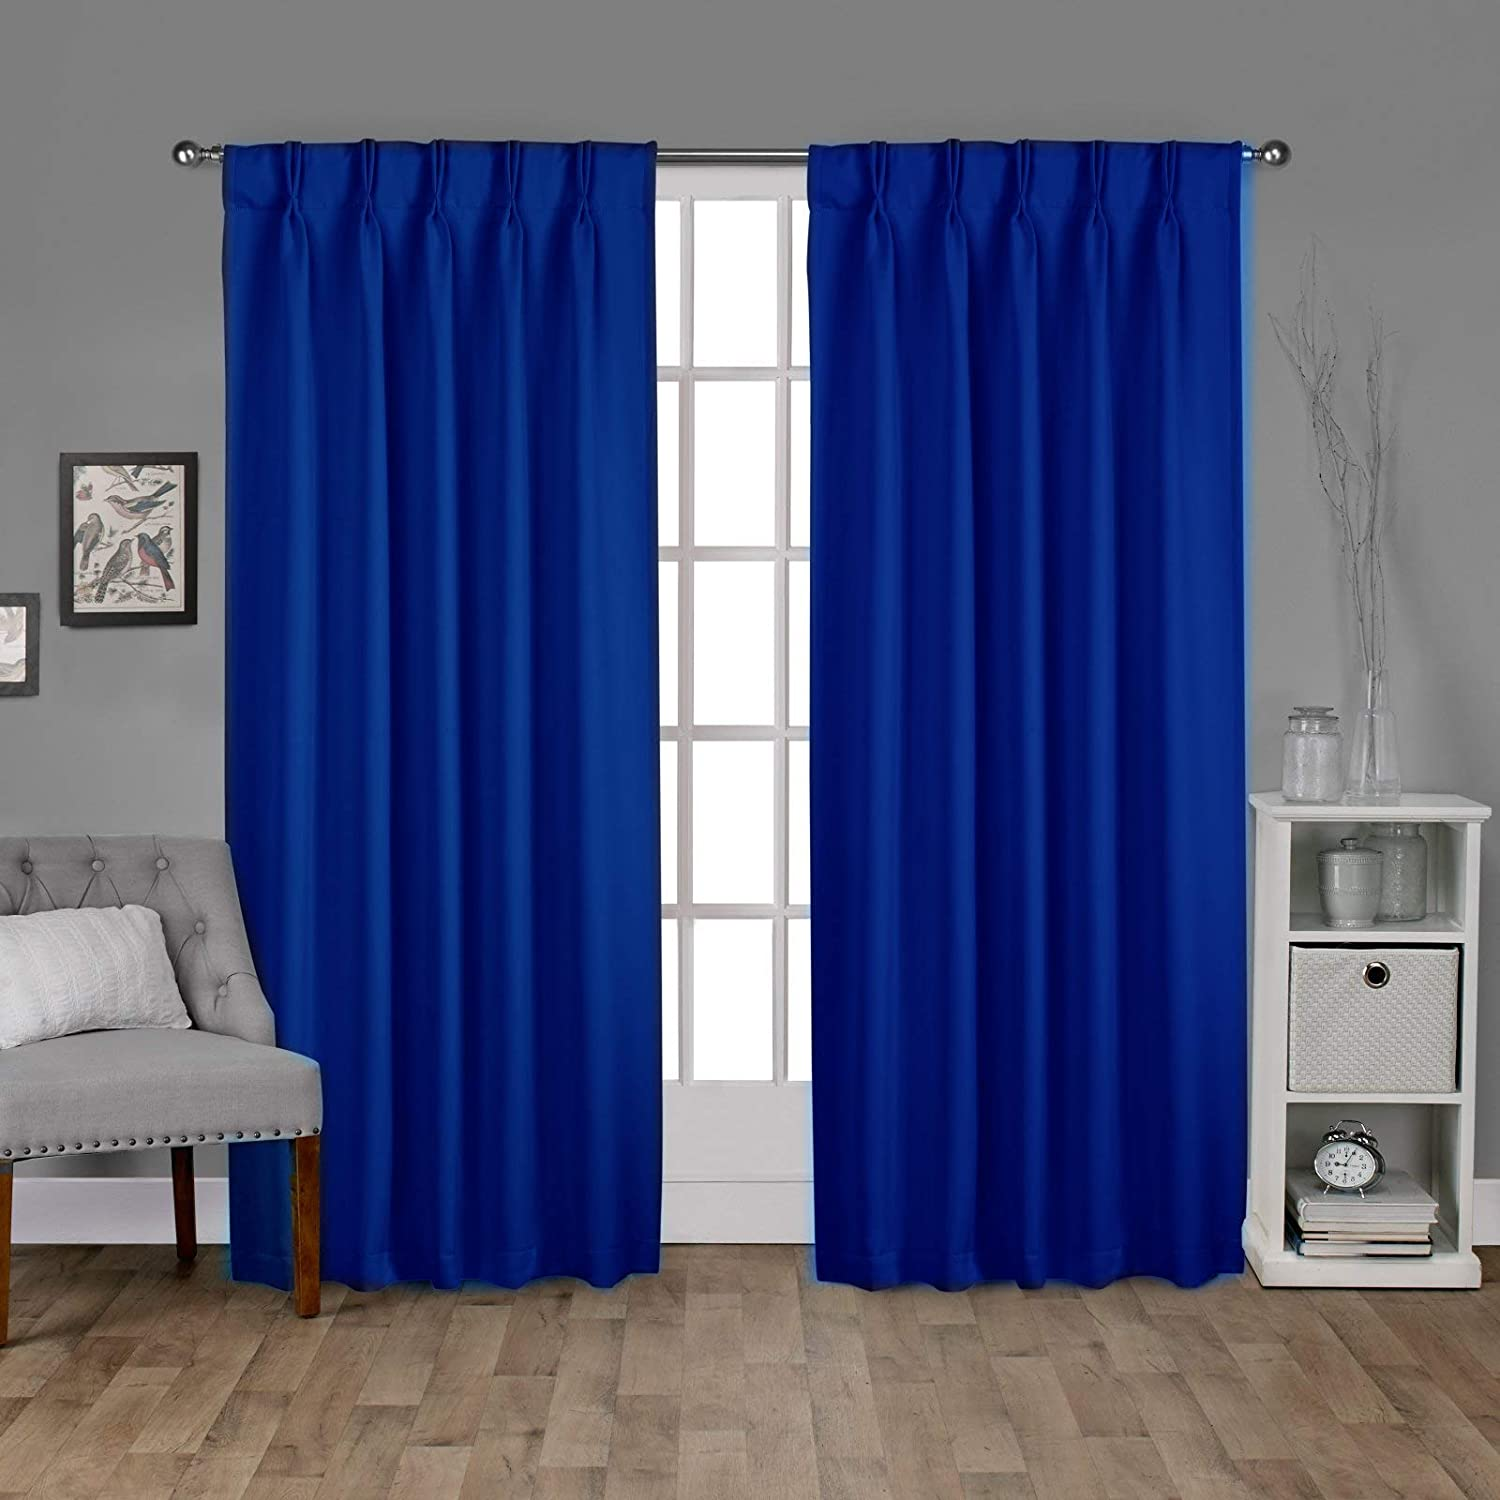 Pinch Pleat Blackout Curtains 100% Insulated High quality new trend rank Thermal Polyester R